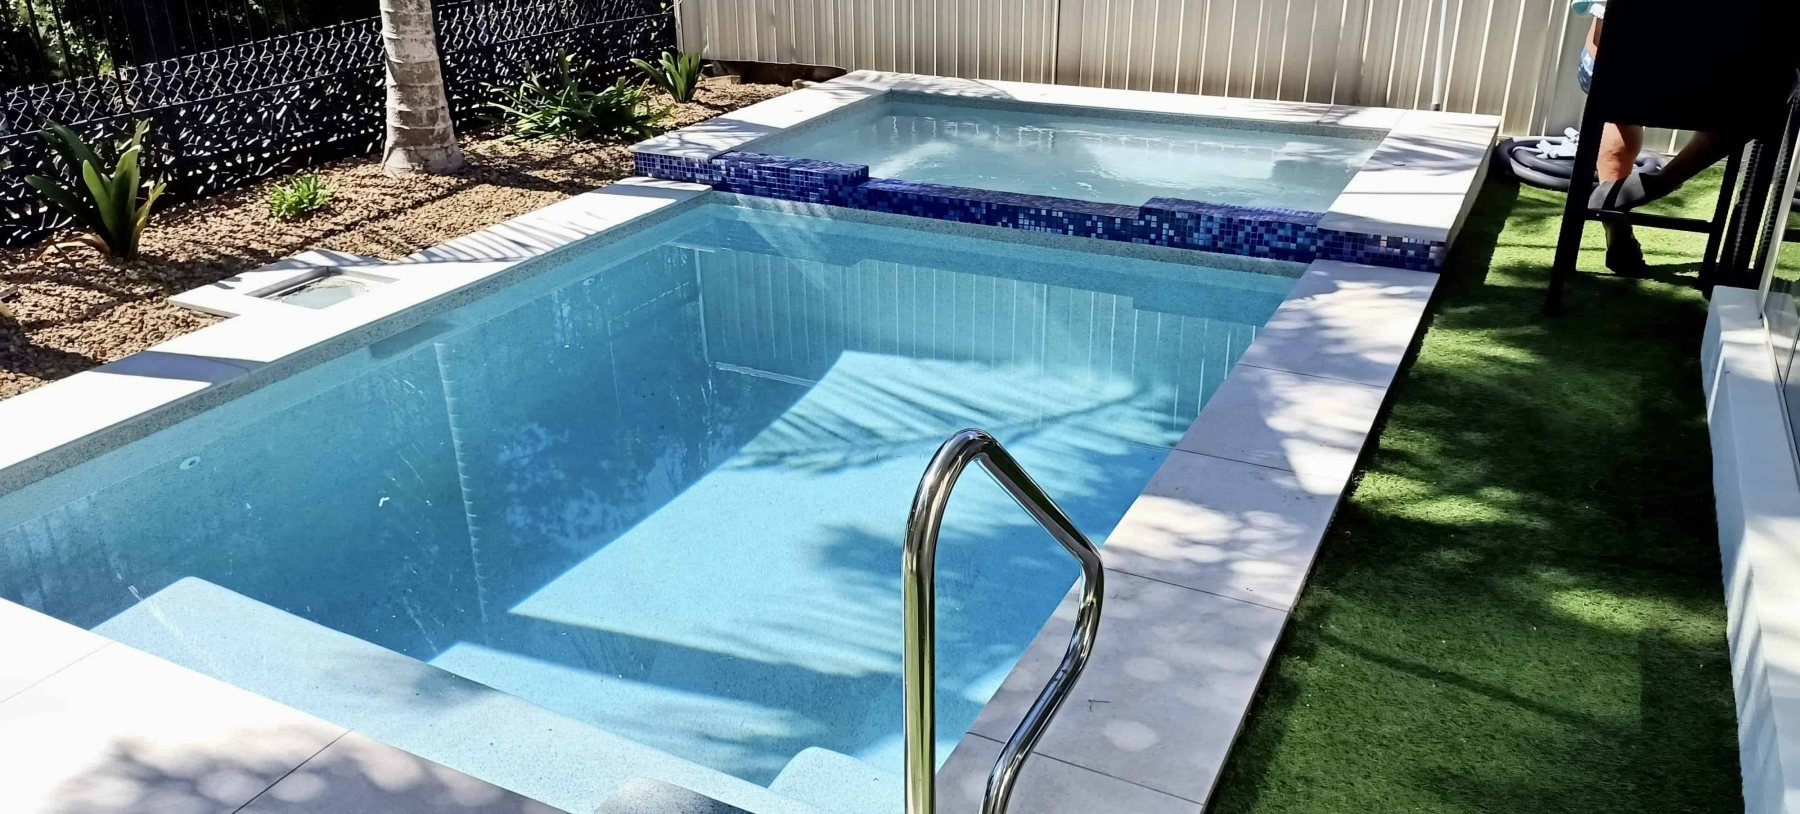 Photo Gallery Pools, Spas & Plunge Pools   Oasis Pool Constructions